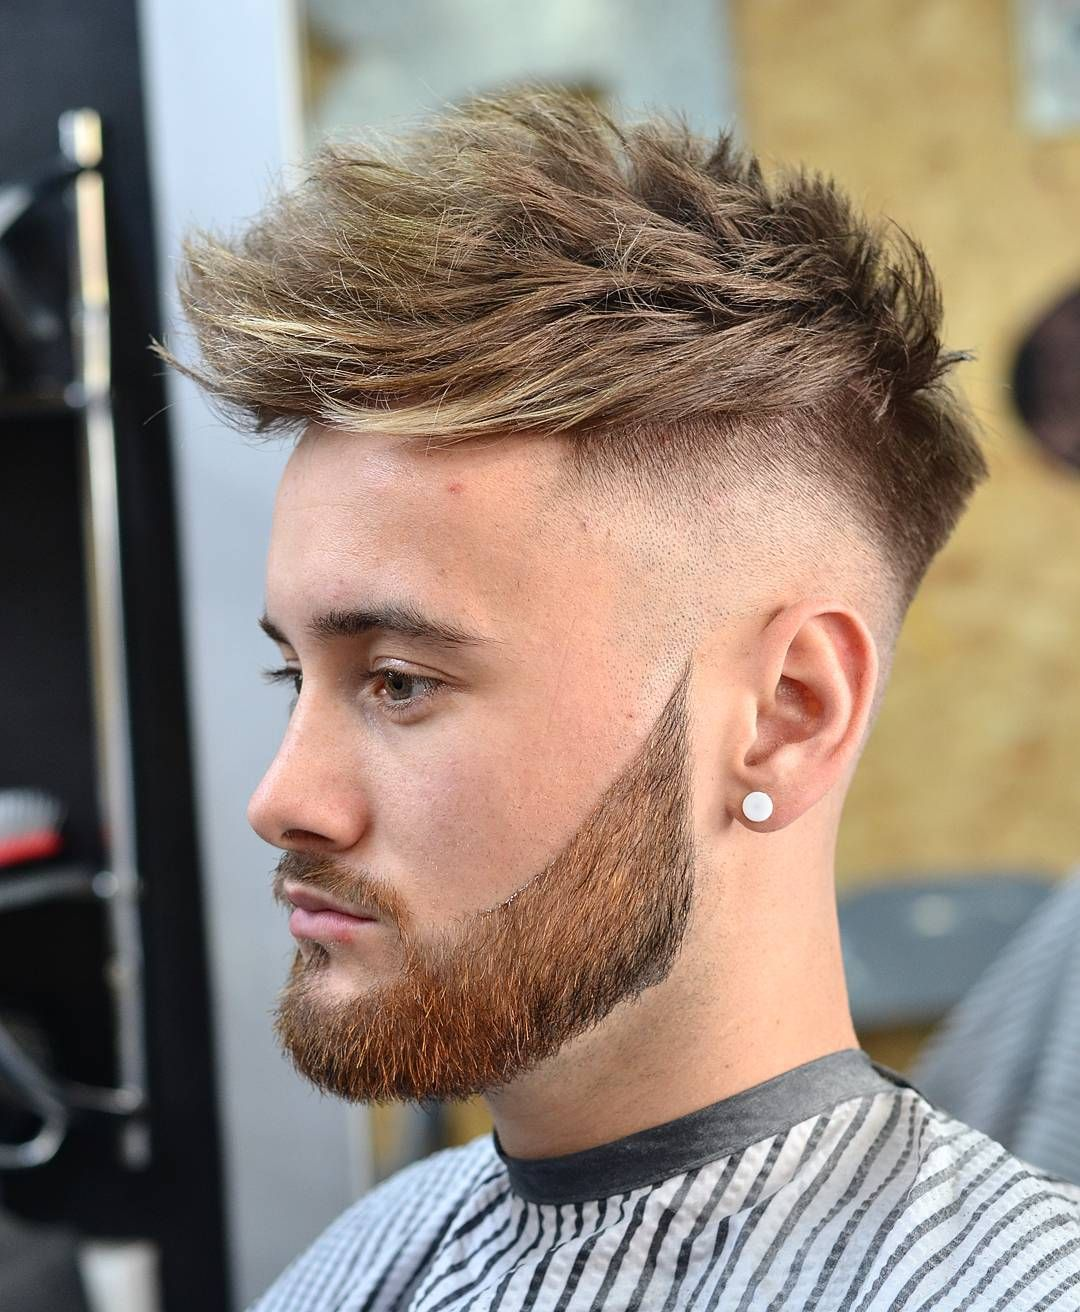 Quiff Undercut Fade Disconnectd Beard Men S Haircuts Coupe Cheveux Homme Coupe De Cheveux Cheveux Homme